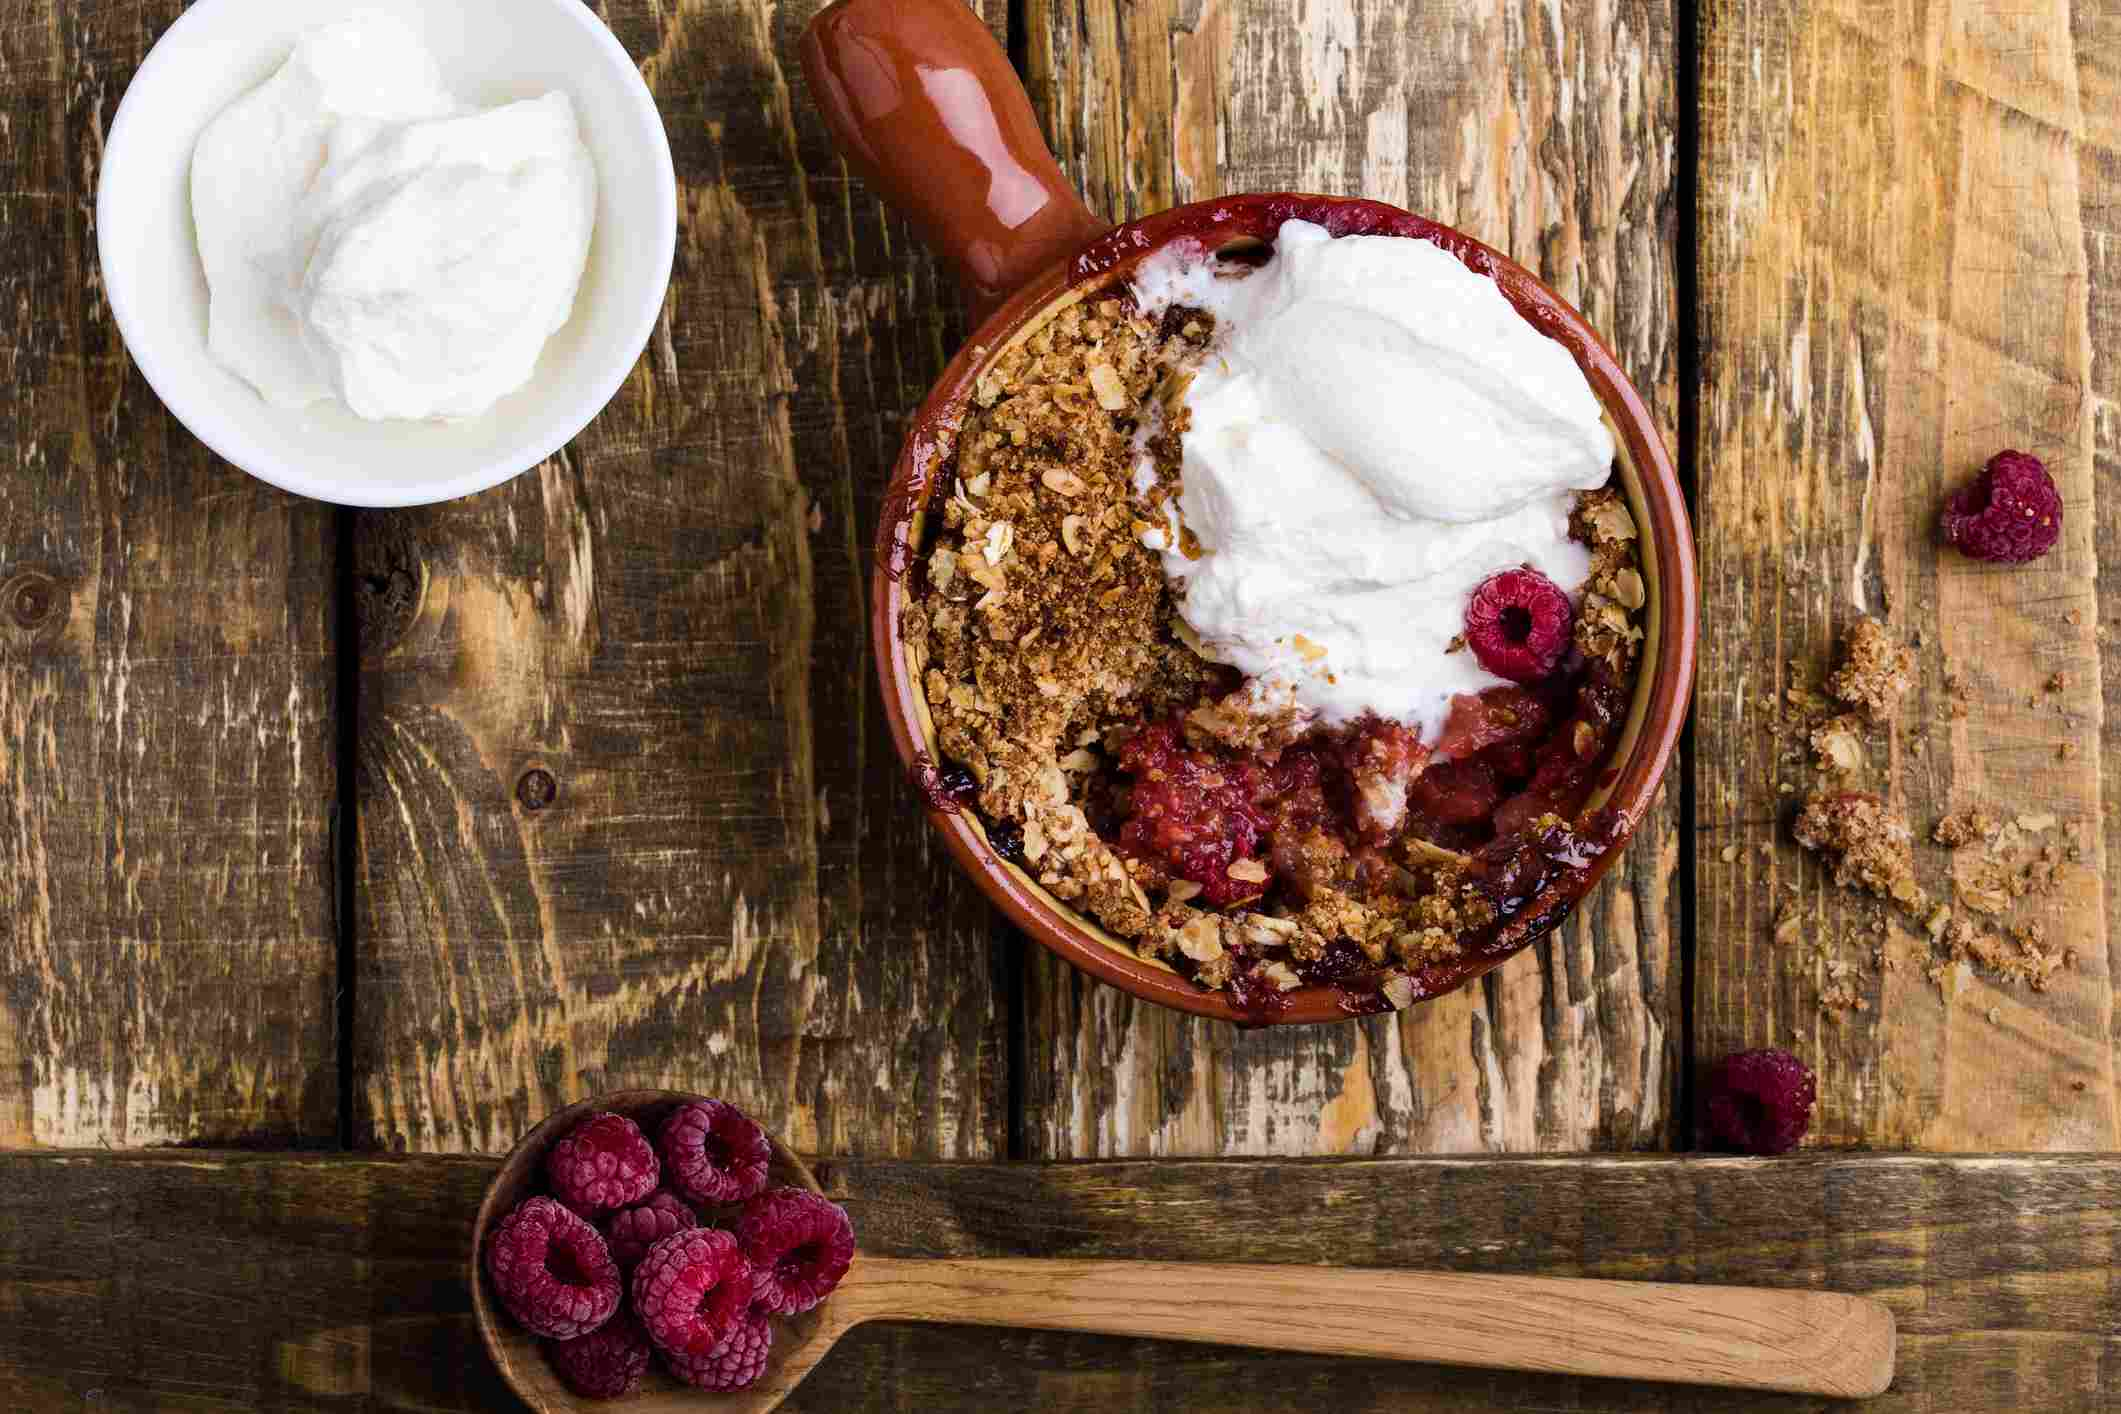 An overhead shot of a raspberry crisp with whipped cream.